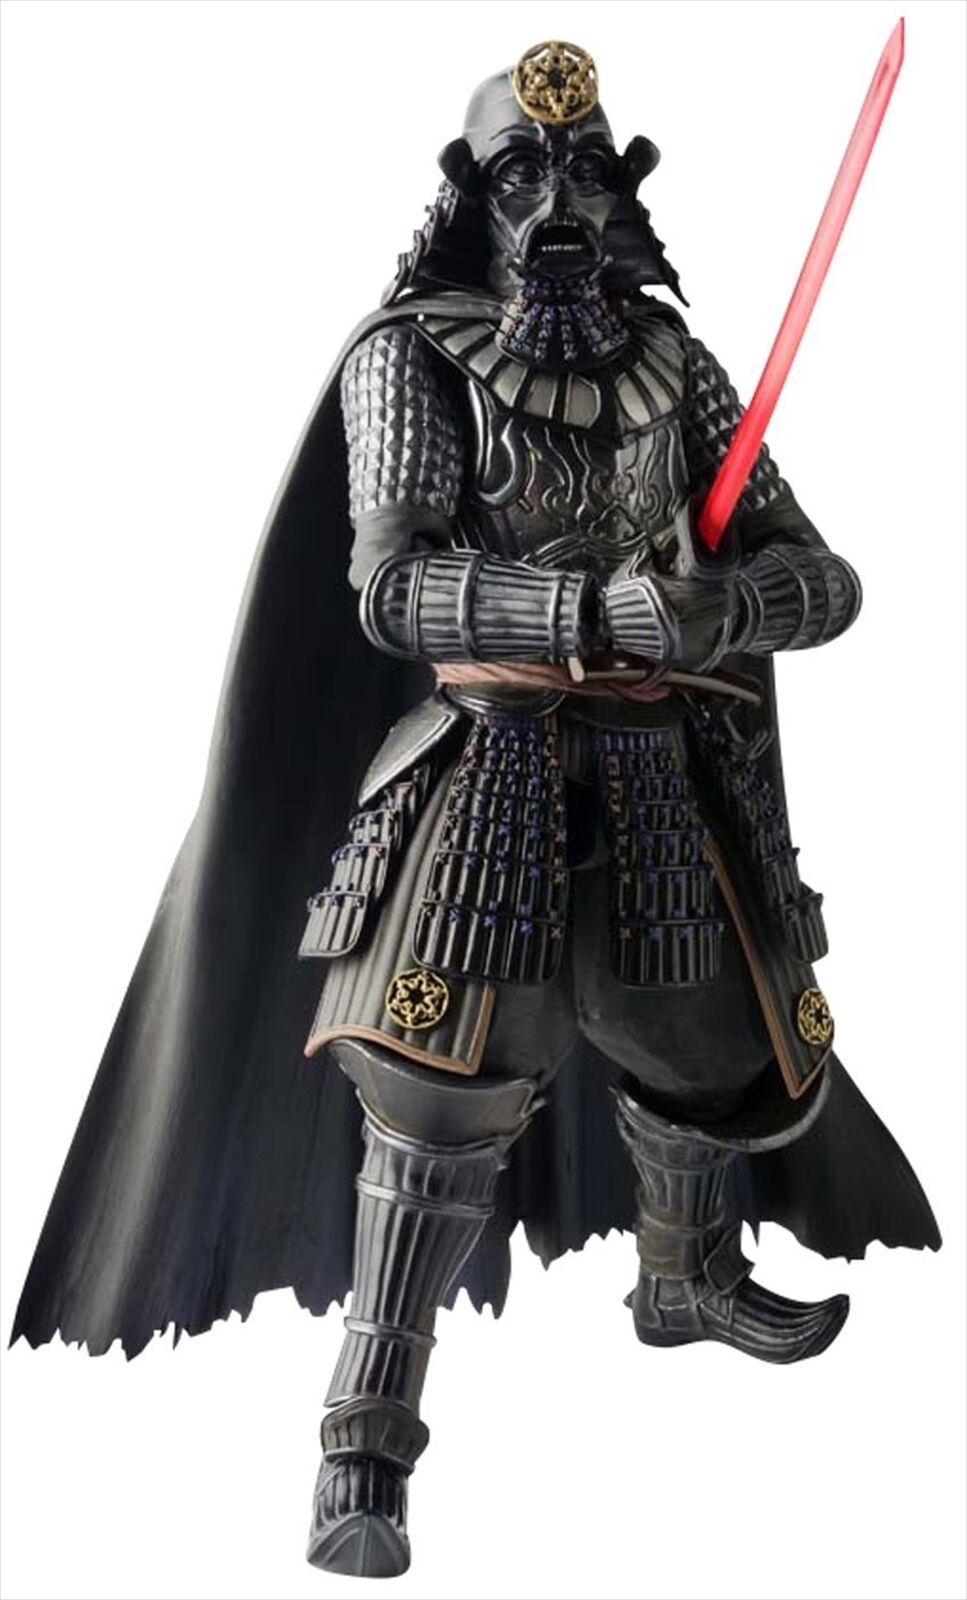 Bandai Movie Realization Samurai General Darth Vader Star Wars Action Figure